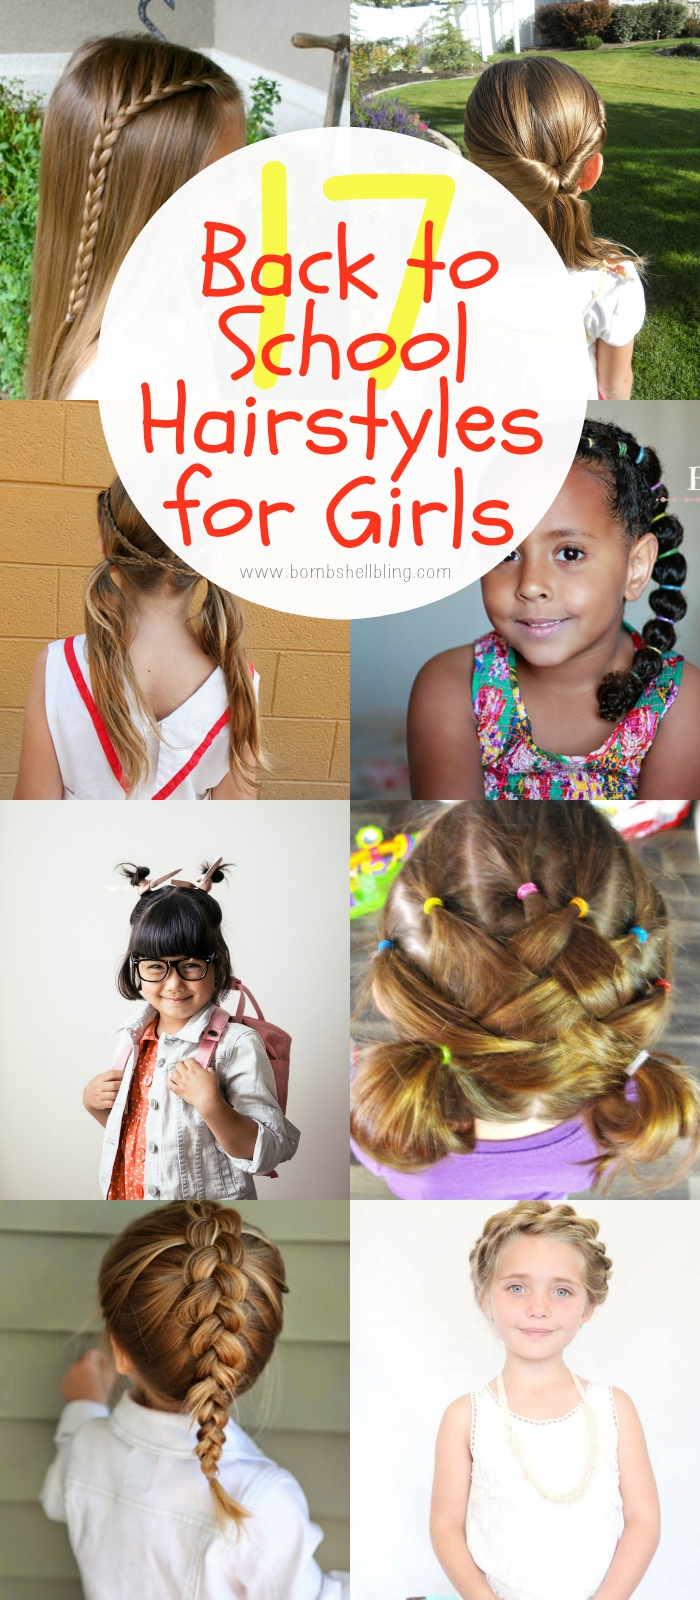 Hairstyles For Girls 17 Simple And Fun Back To School Ideas